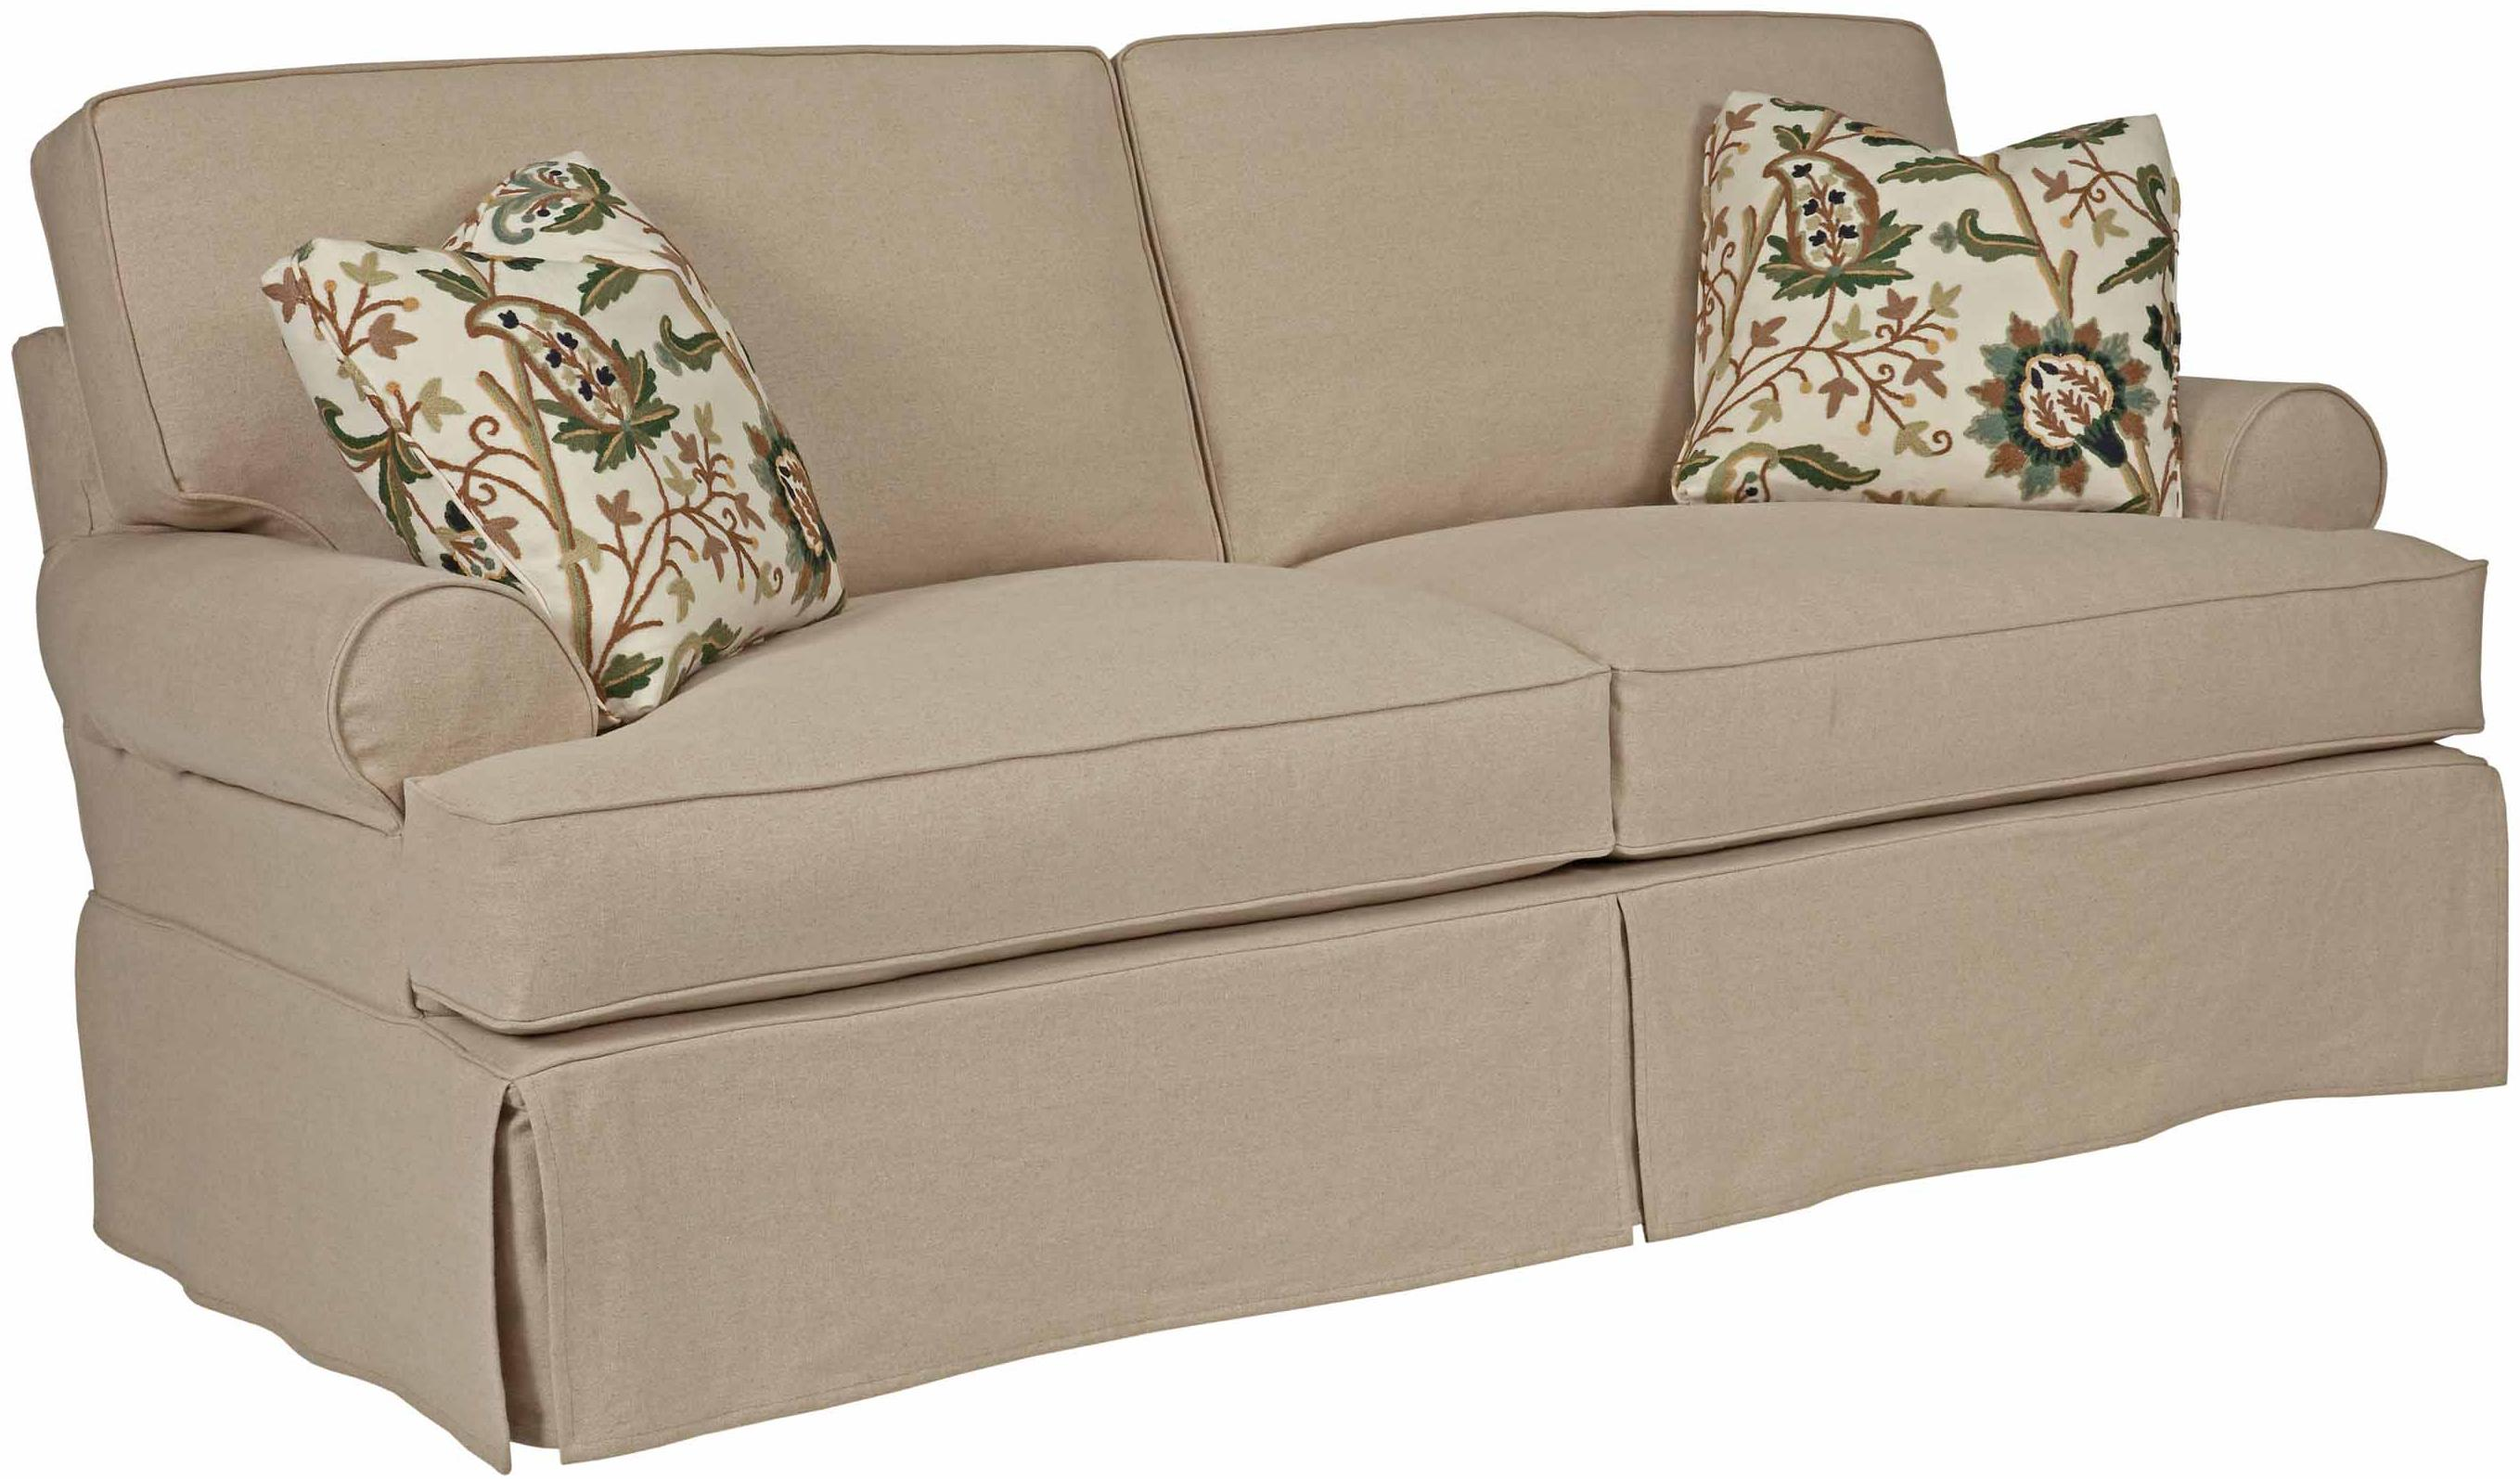 Sofa Slipcovers Rowe Collections Slipcover Sofas Slipcovers